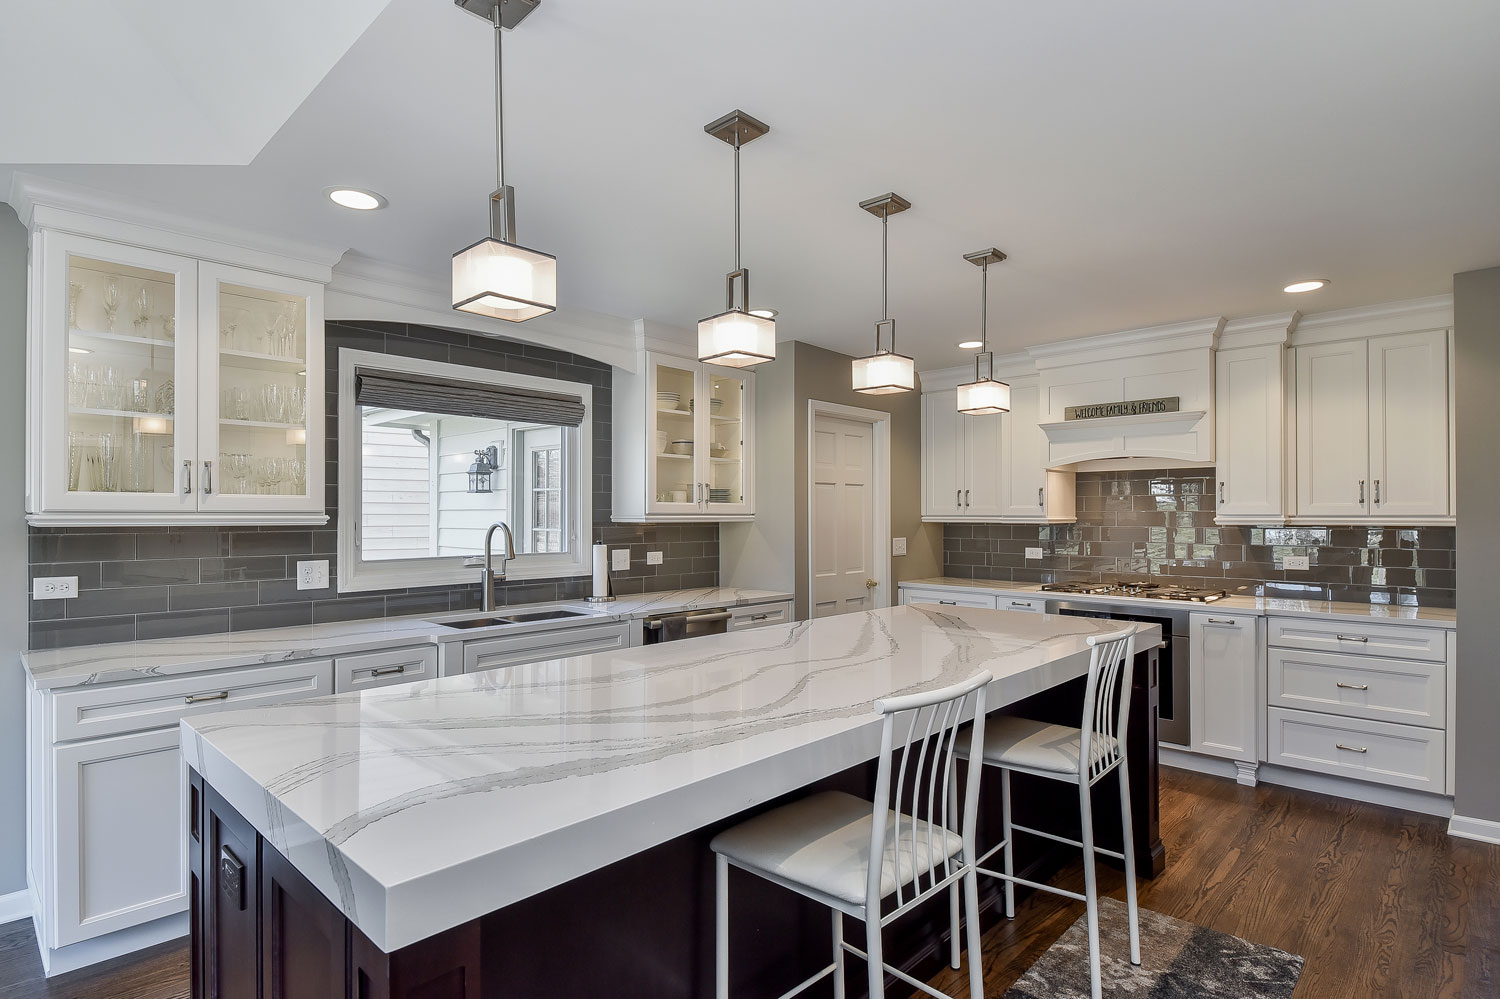 Naperville Kitchen Remodeling Pictures - Sebring Design Build